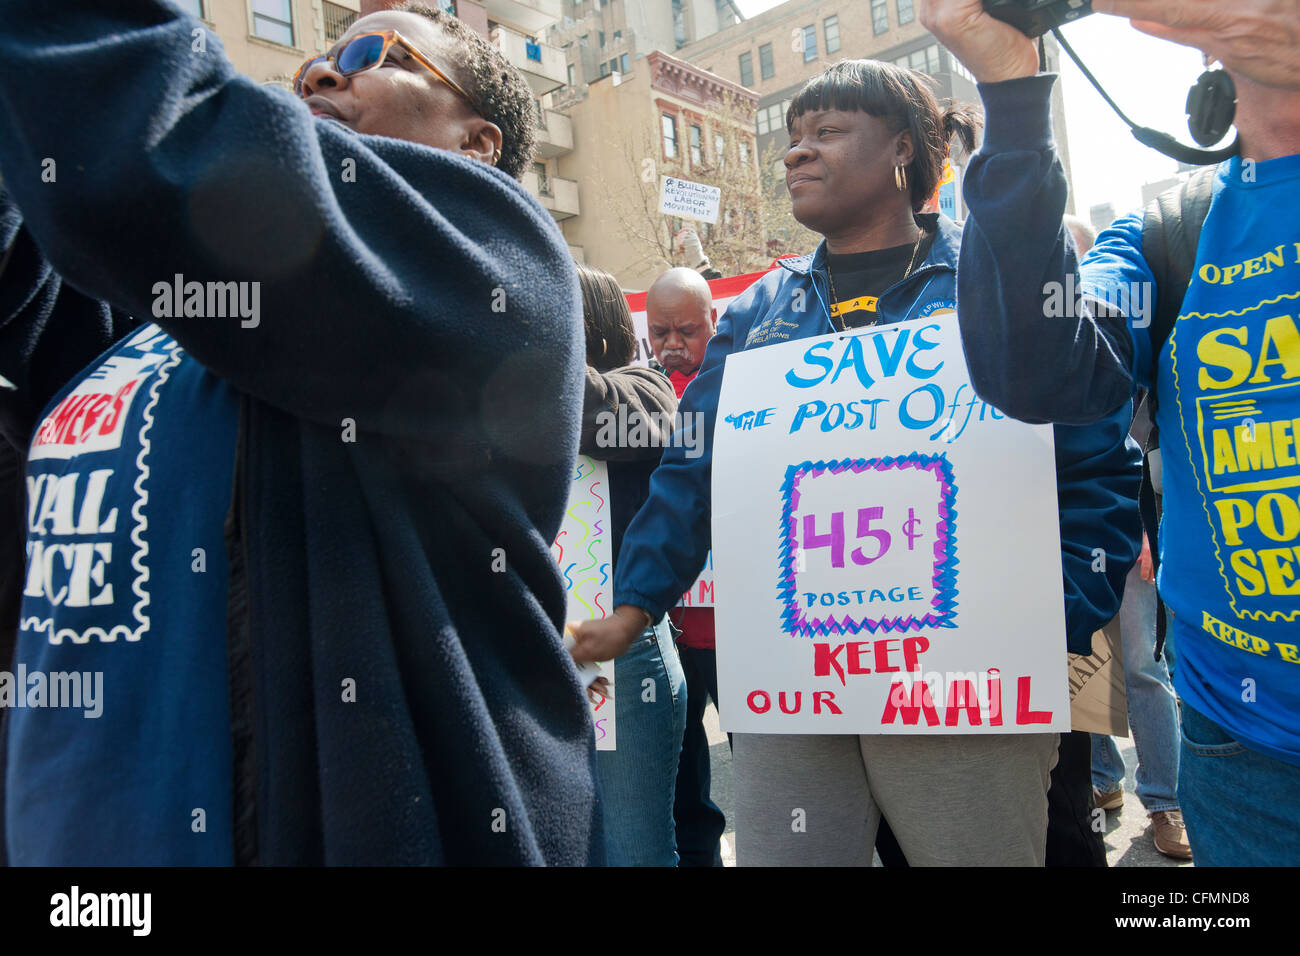 New York Metro Area Postal Union workers and supporters rally to demand continuation of 6 day postal delivery service - Stock Image